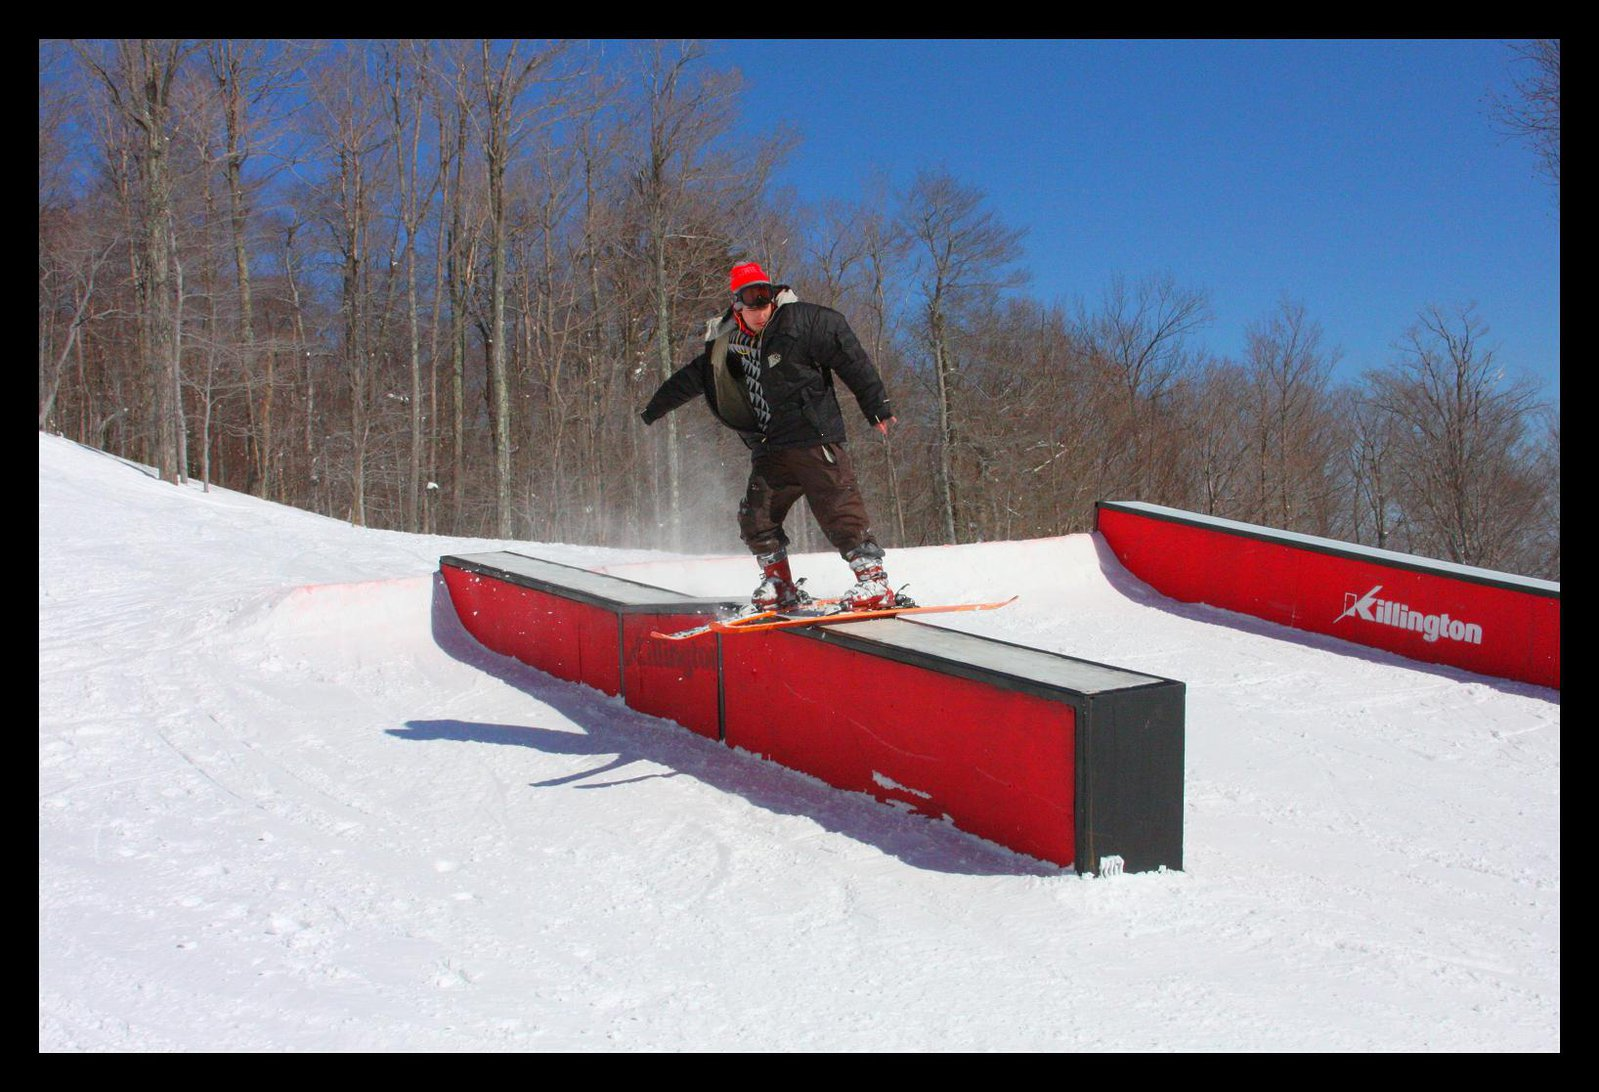 Dfd box at killington